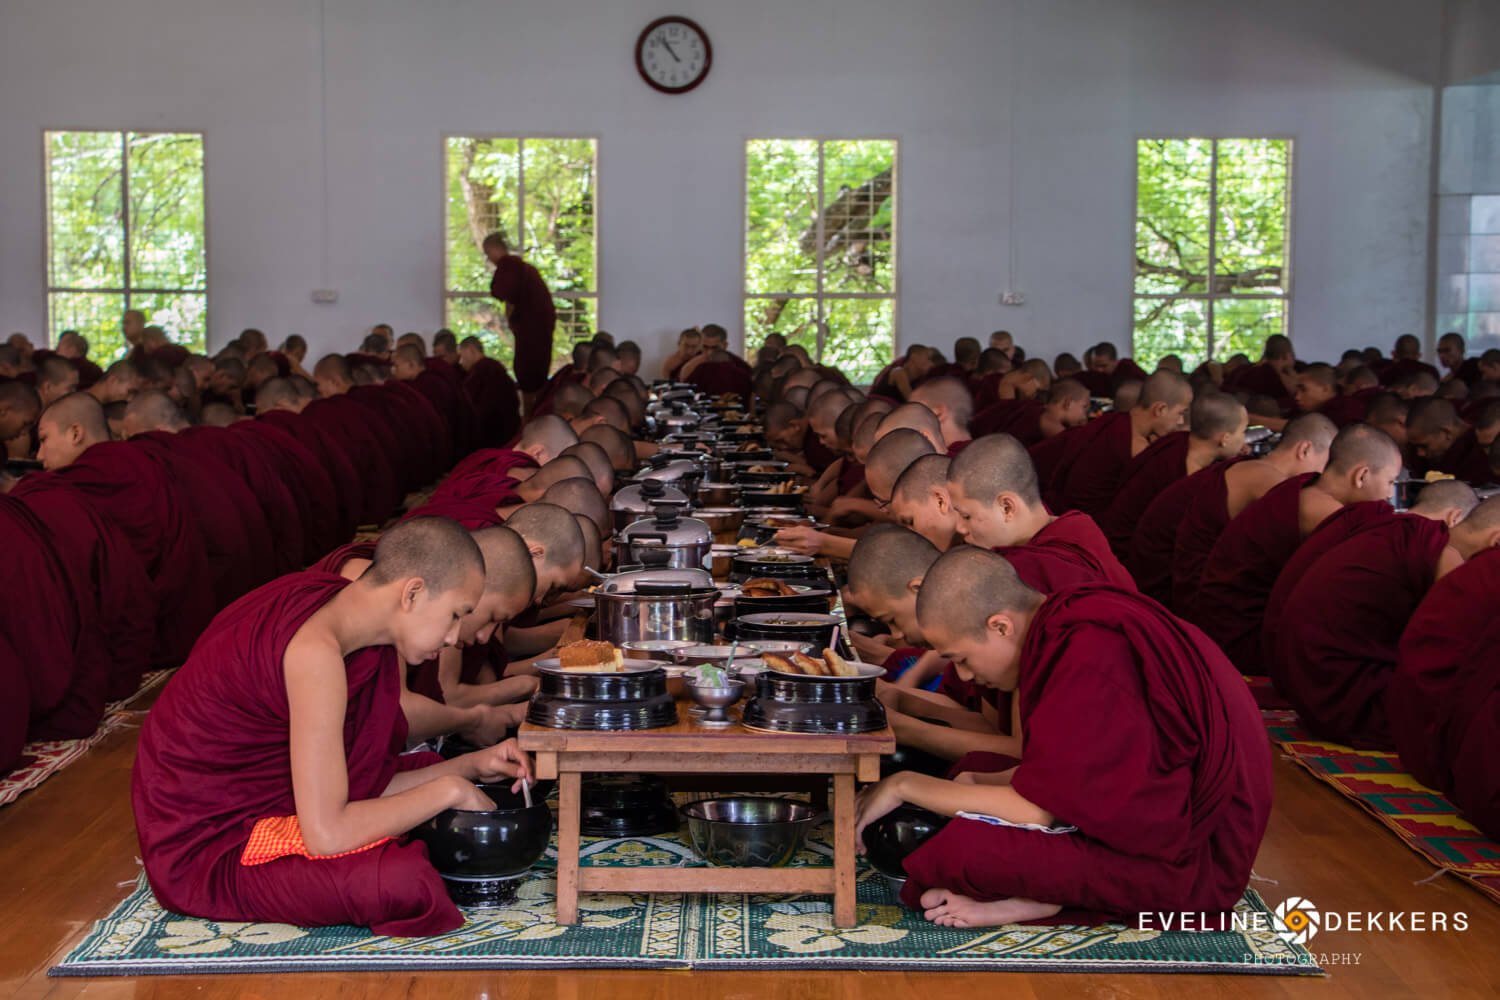 Last meal of the day for the monks - Myanmar